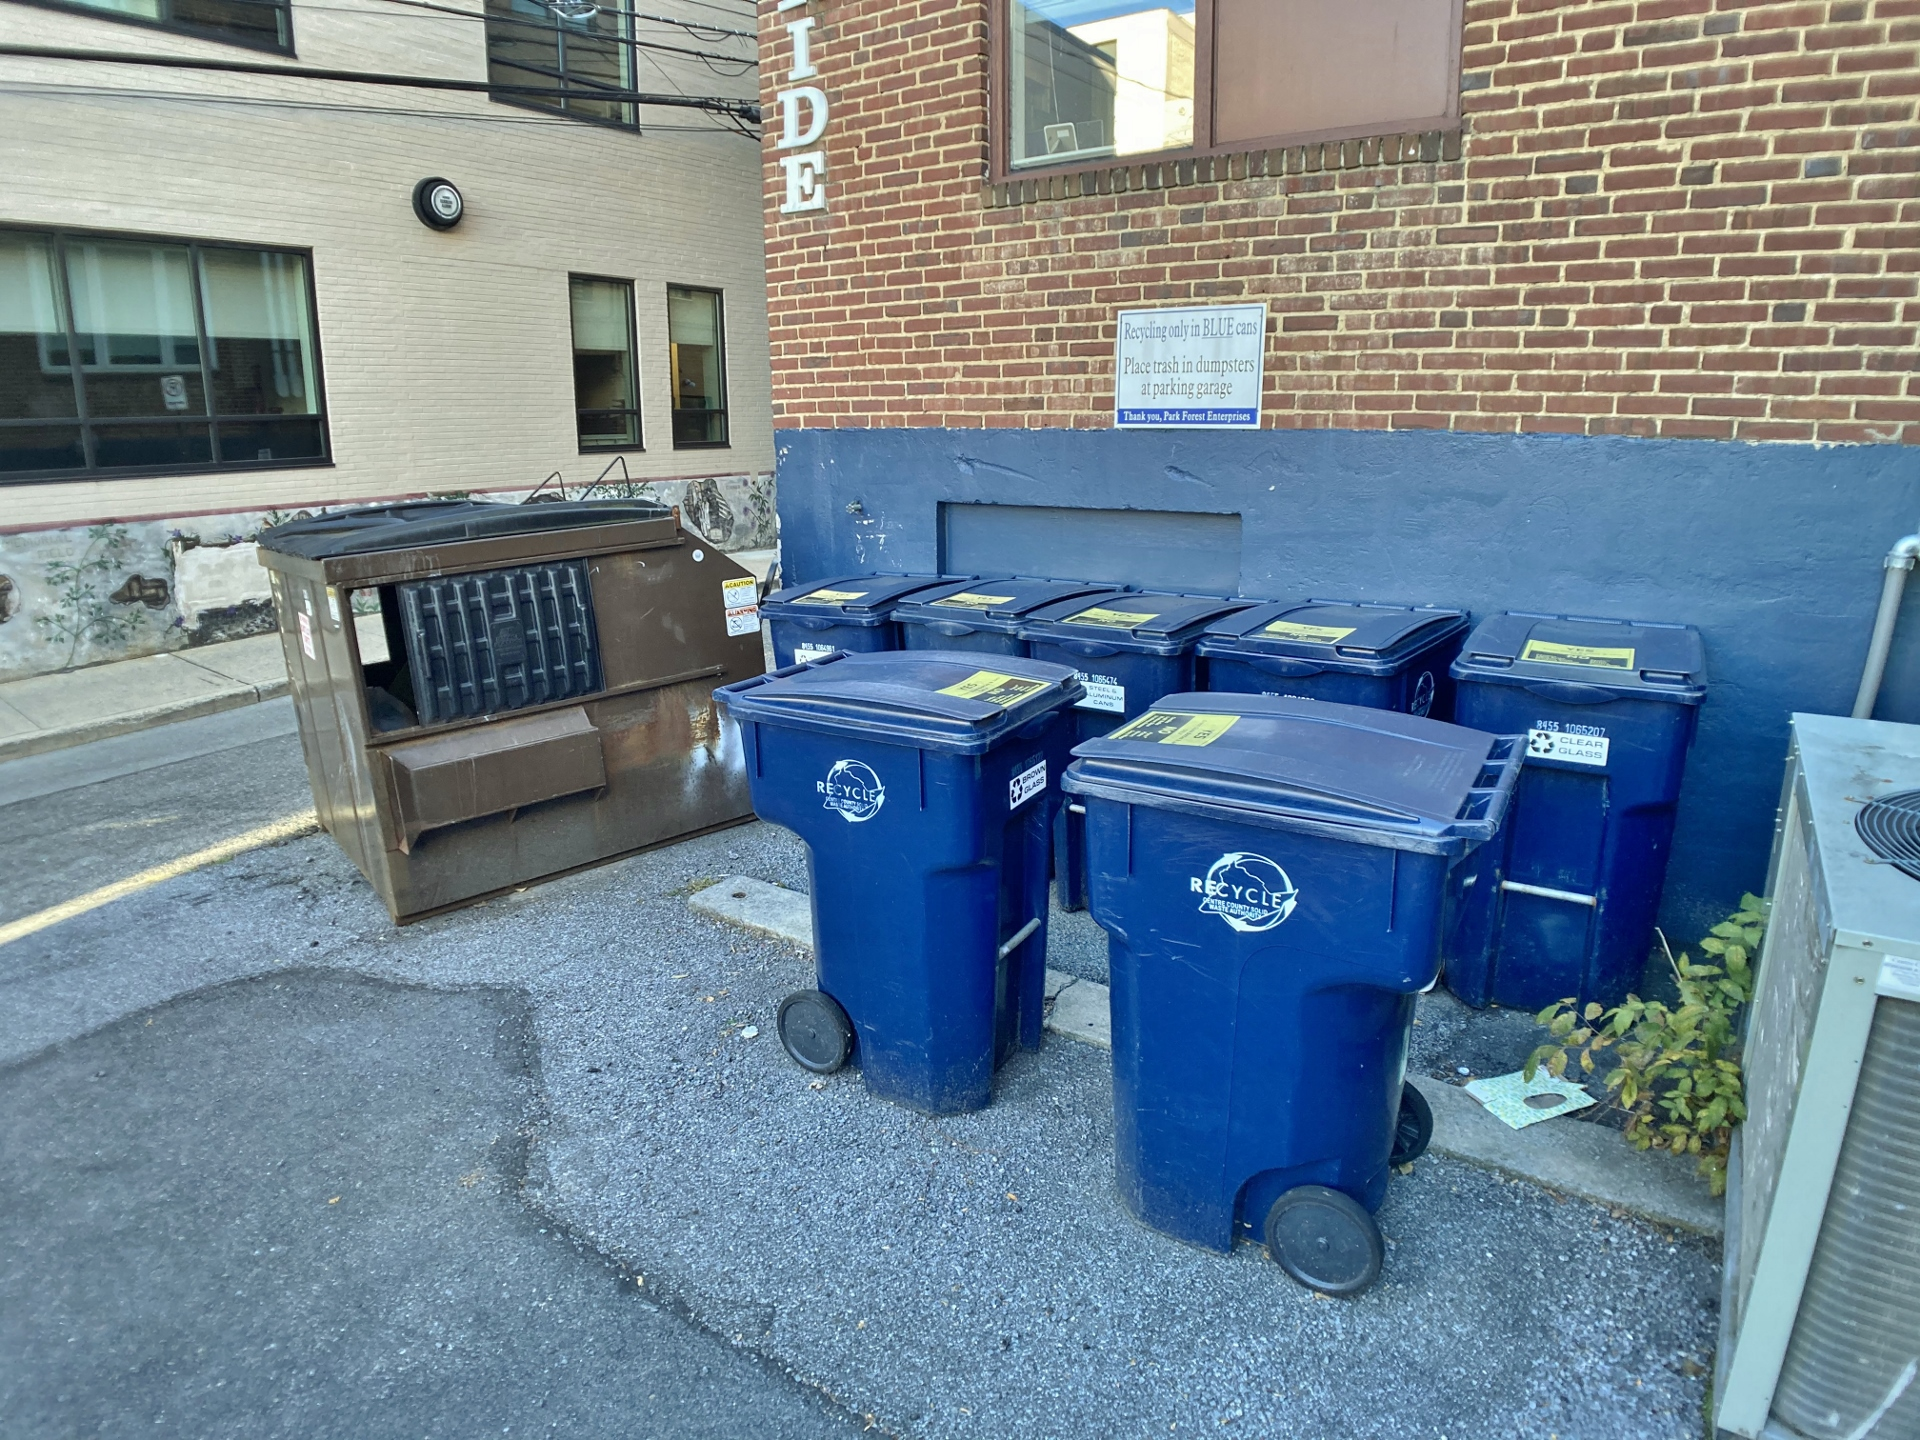 Fromm Building, Trash and Recycling Area